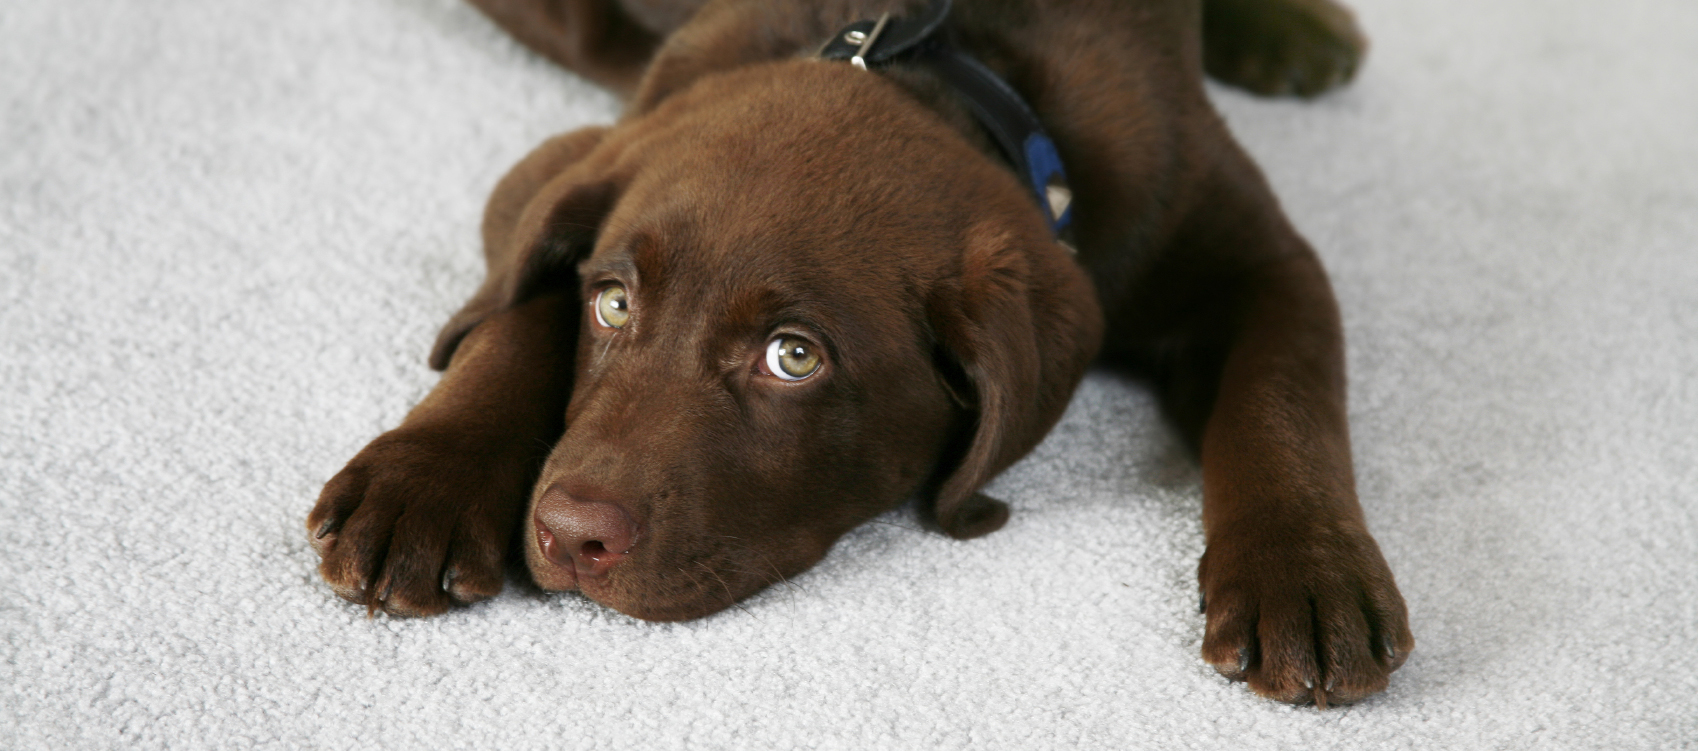 Adorable Chocolate Labrador Retriever Puppy